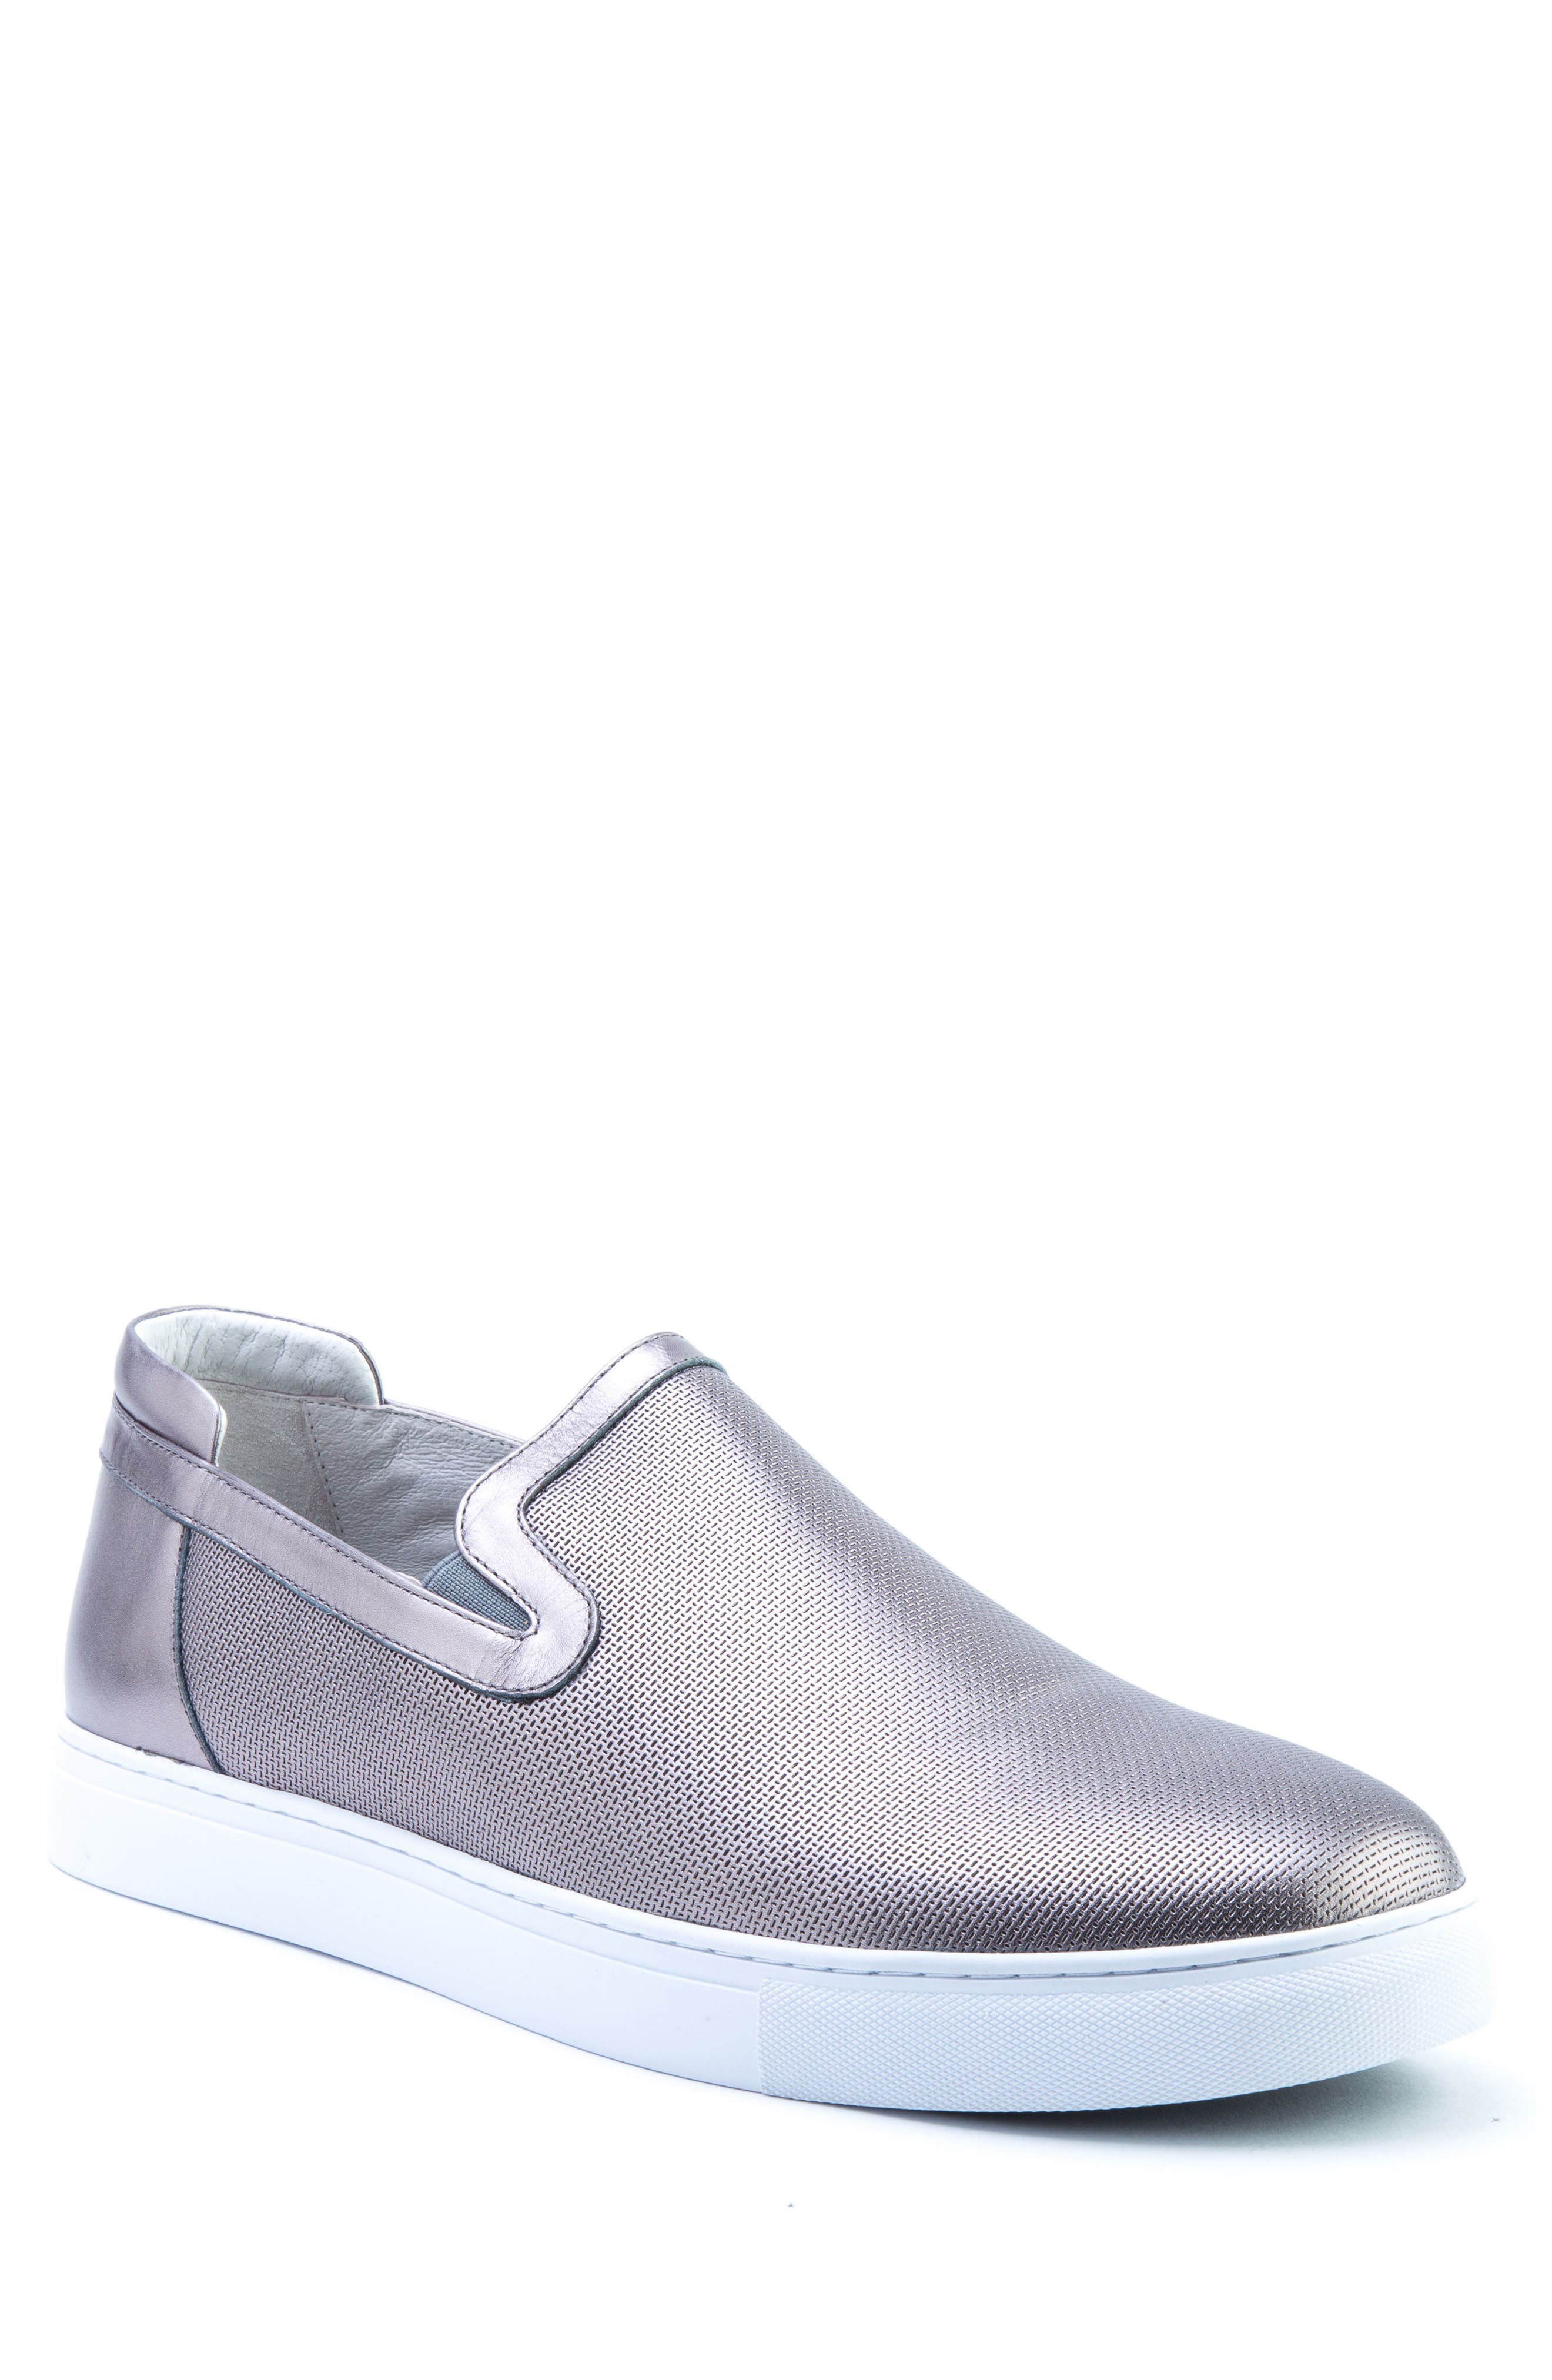 Main Image - Badgley Mischka Grant Sneaker (Men)